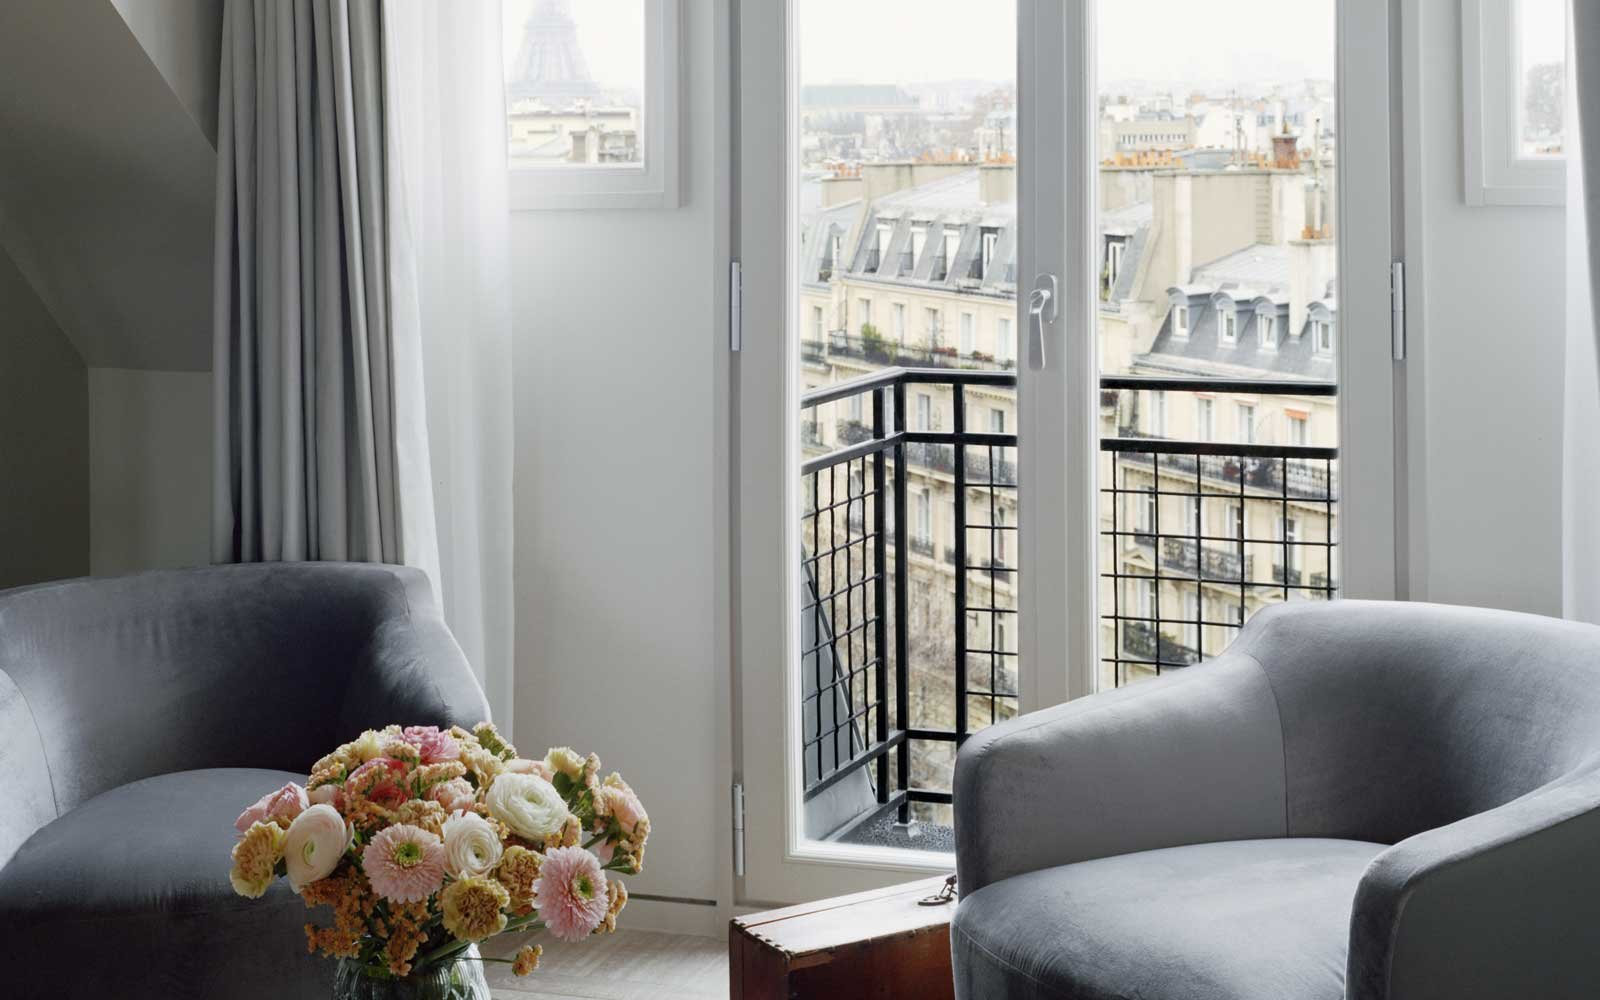 View from a room at the Hotel Lutetia, in Paris, France